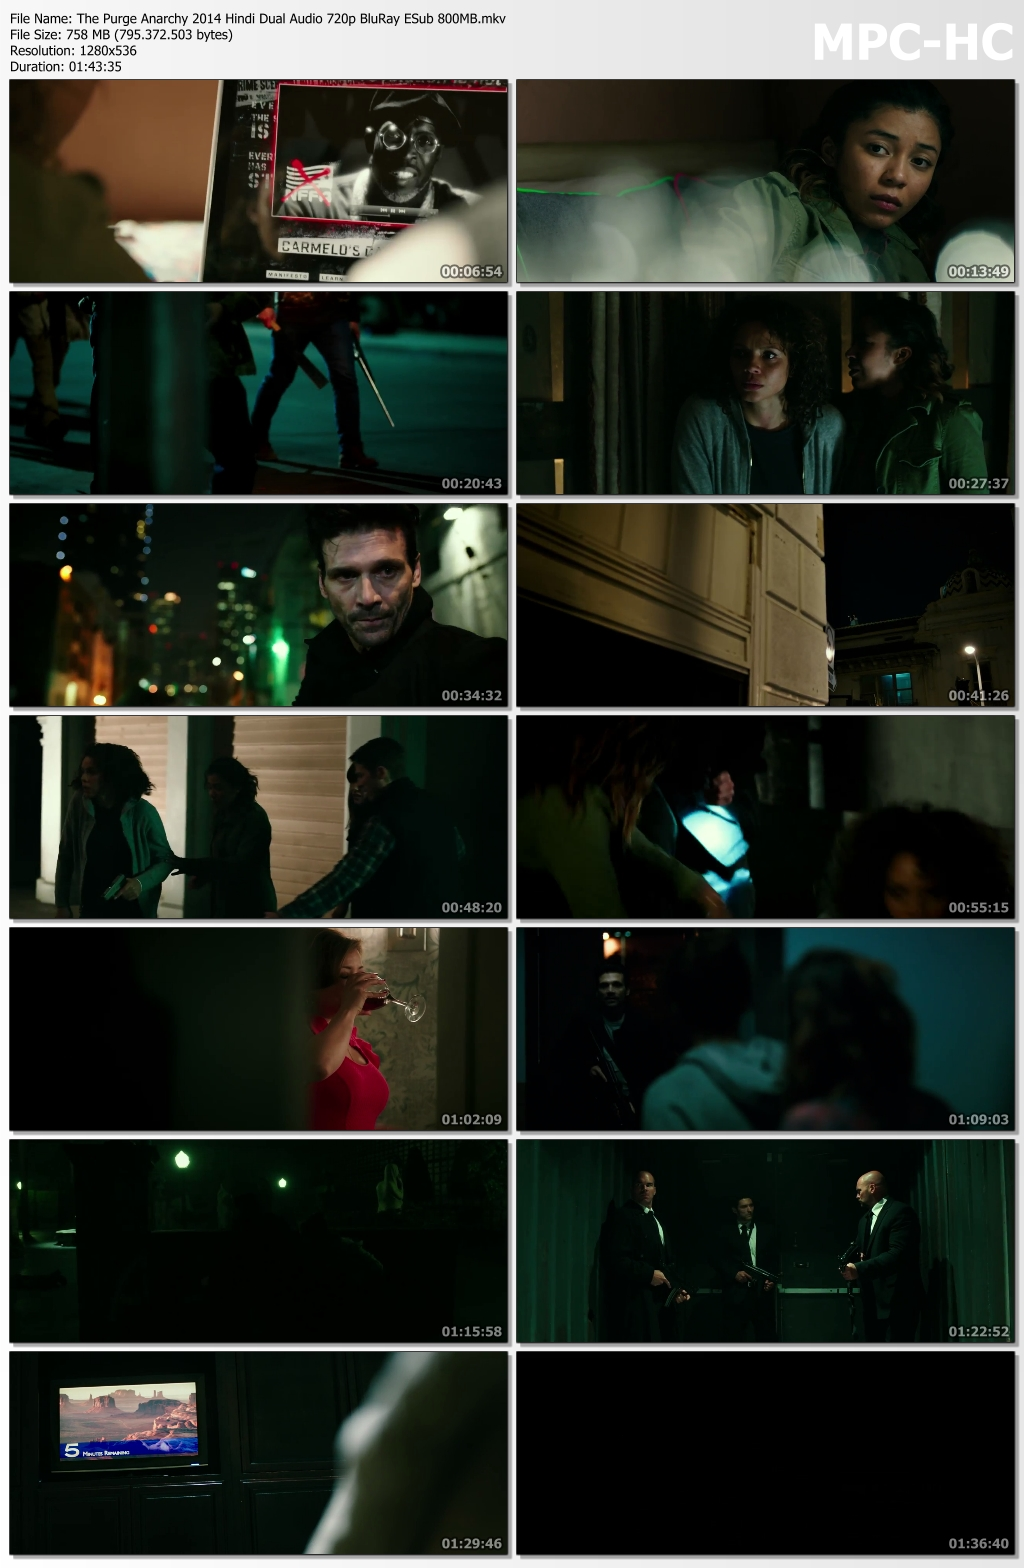 The-Purge-Anarchy-2014-Hindi-Dual-Audio-720p-Blu-Ray-ESub-800-MB-mkv-thumbs